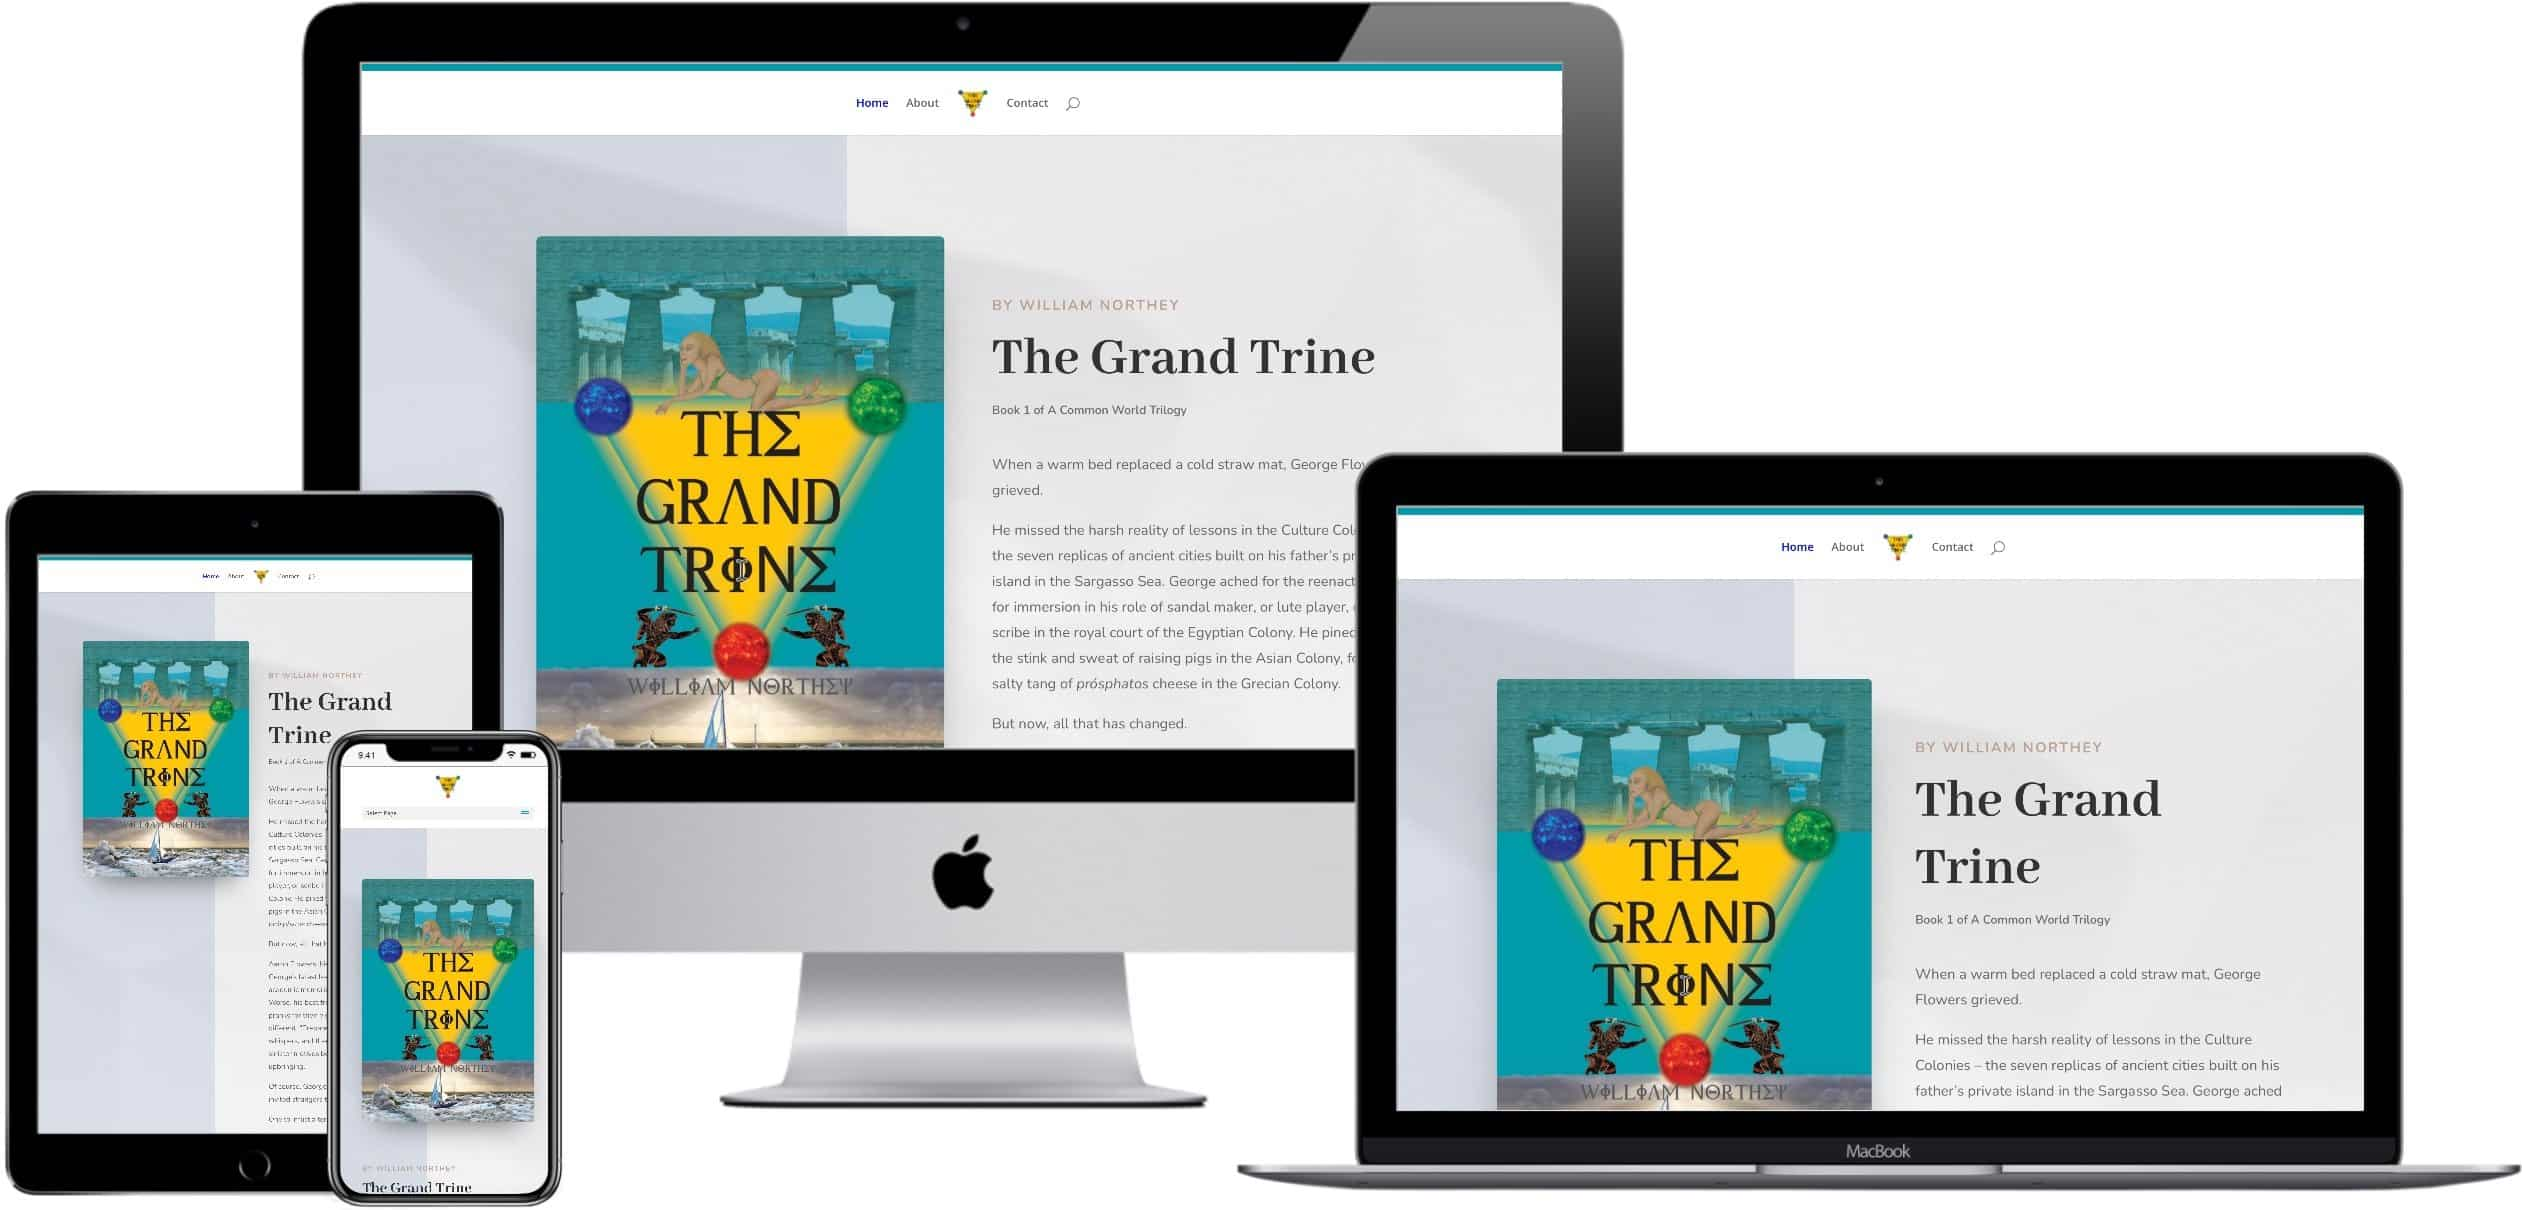 Responsive Web Design - The Grand Trine - William Northey